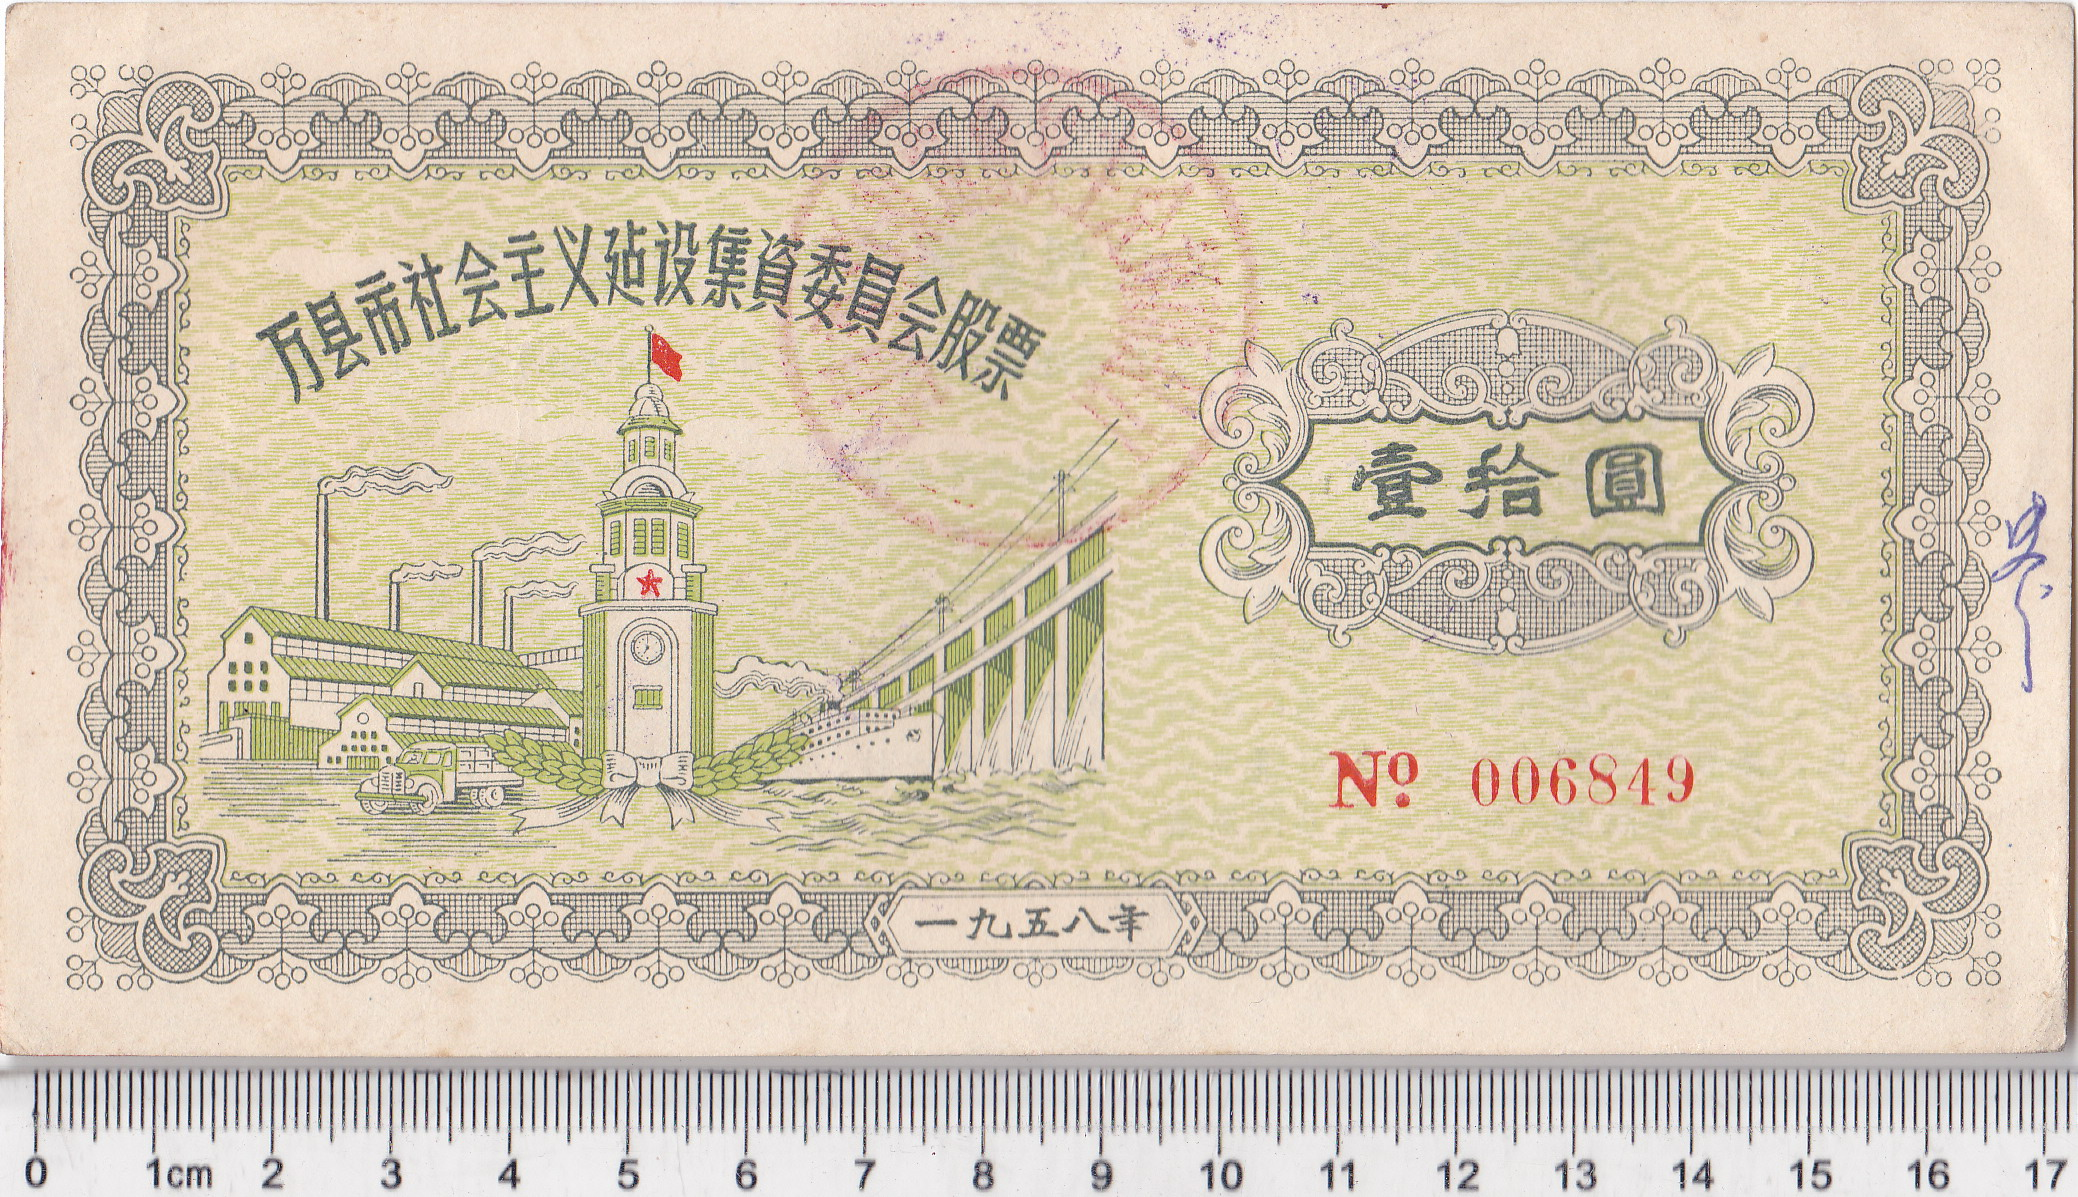 S2002, Wan County Socialist Committee Stock Certificate, 10 Yuan, China 1958